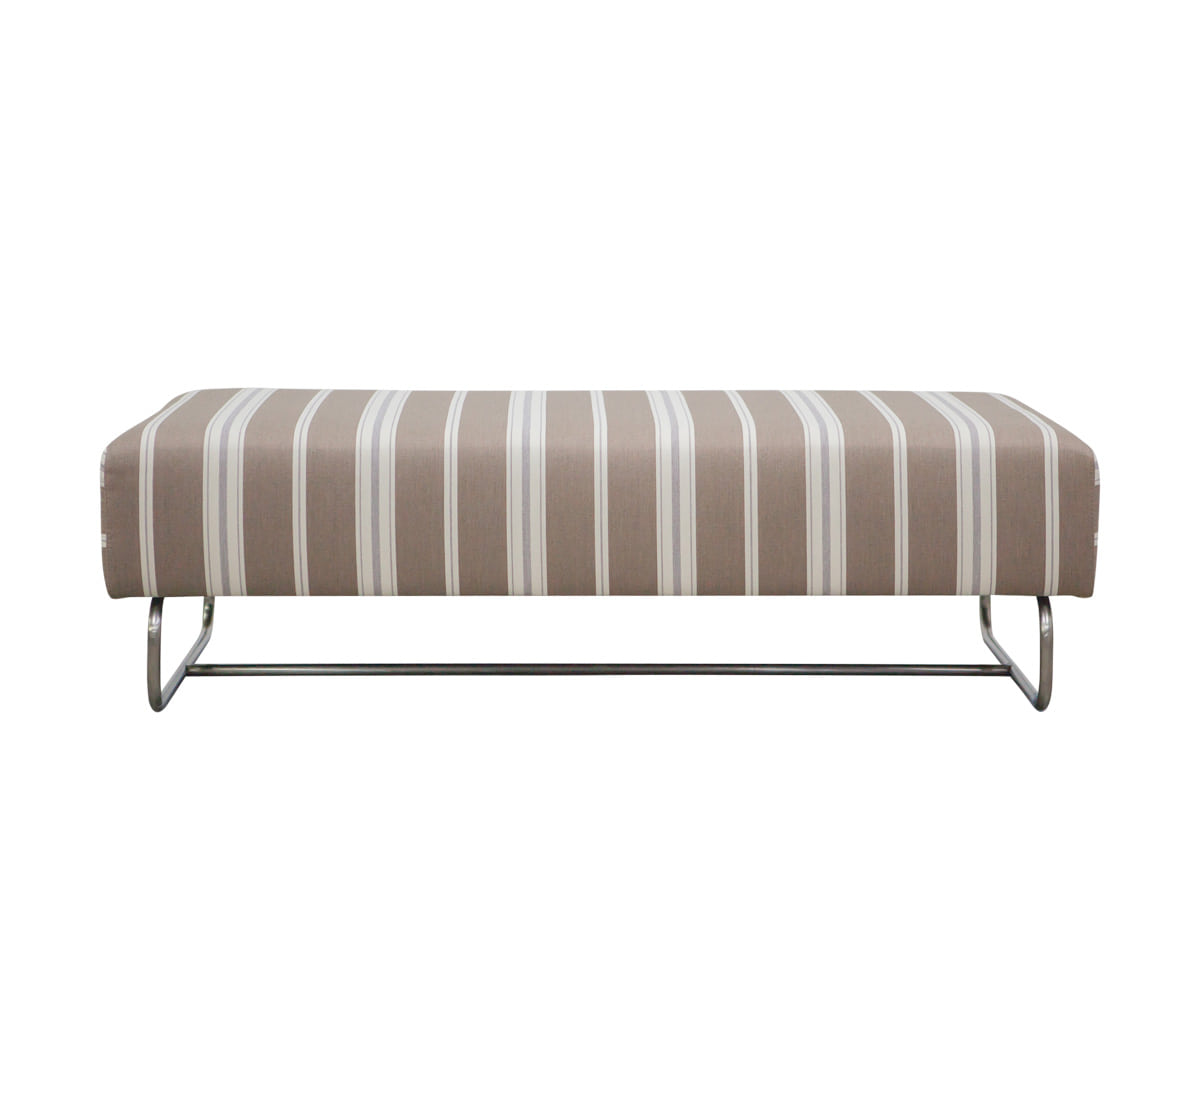 Zacc collection by SEDEC Modern Steel Bench (Stripe)  모던 스틸 벤치 (스트라이프)